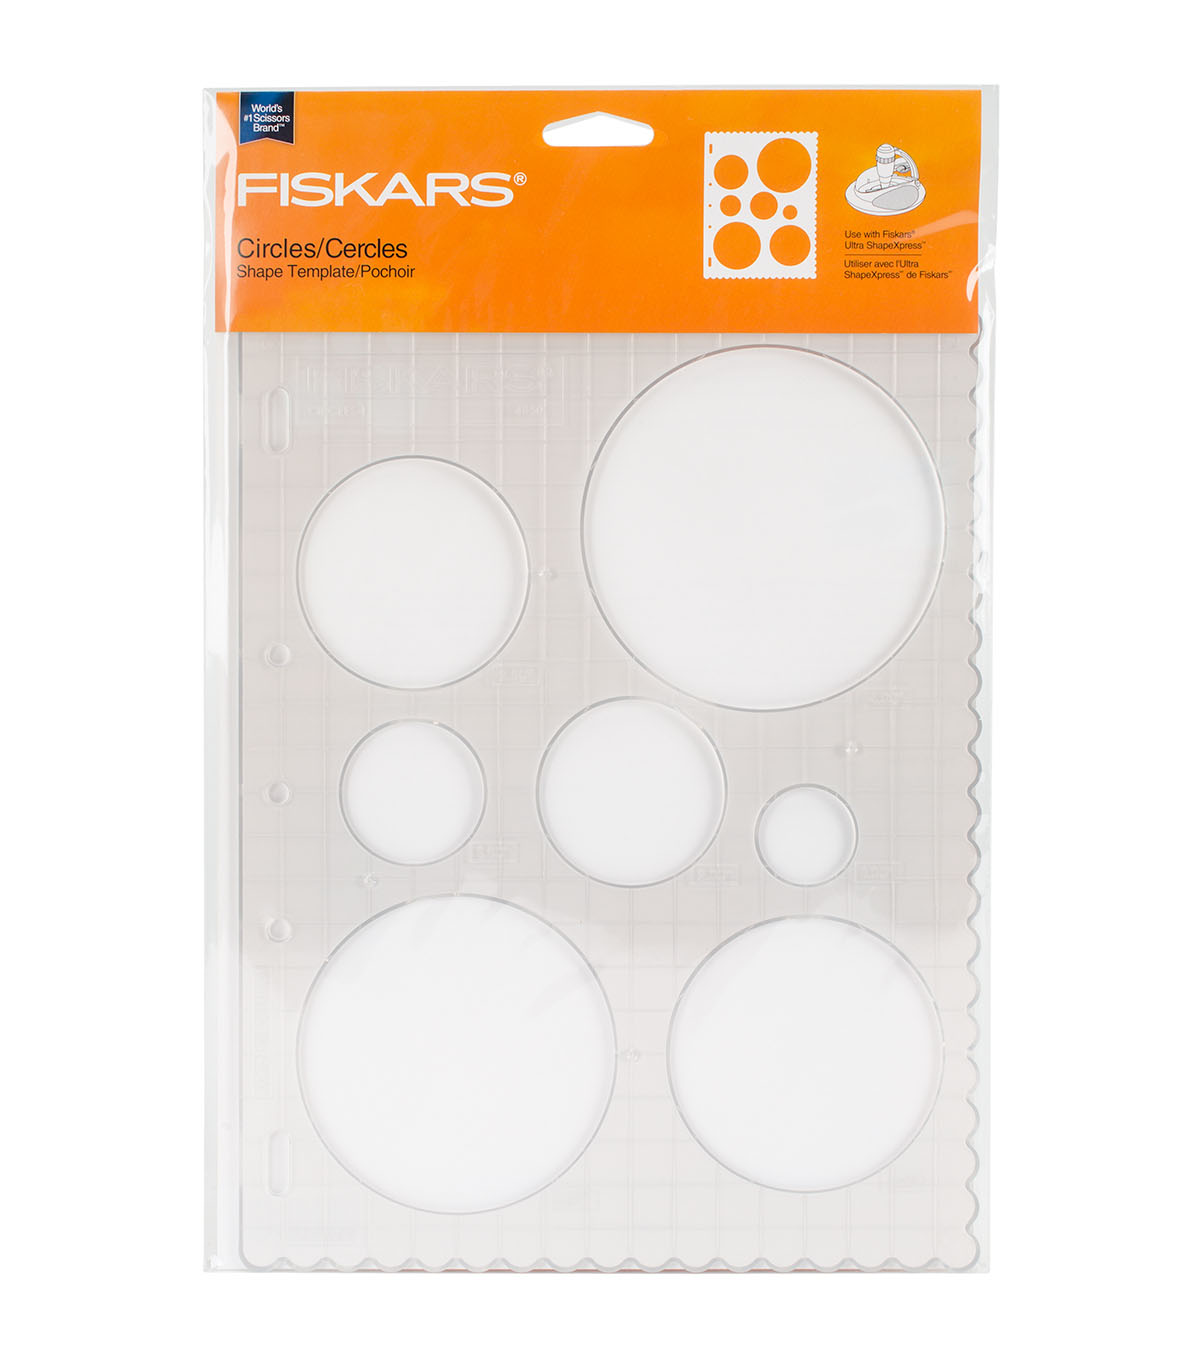 Fiskars ShapeTemplates-Many Designs!